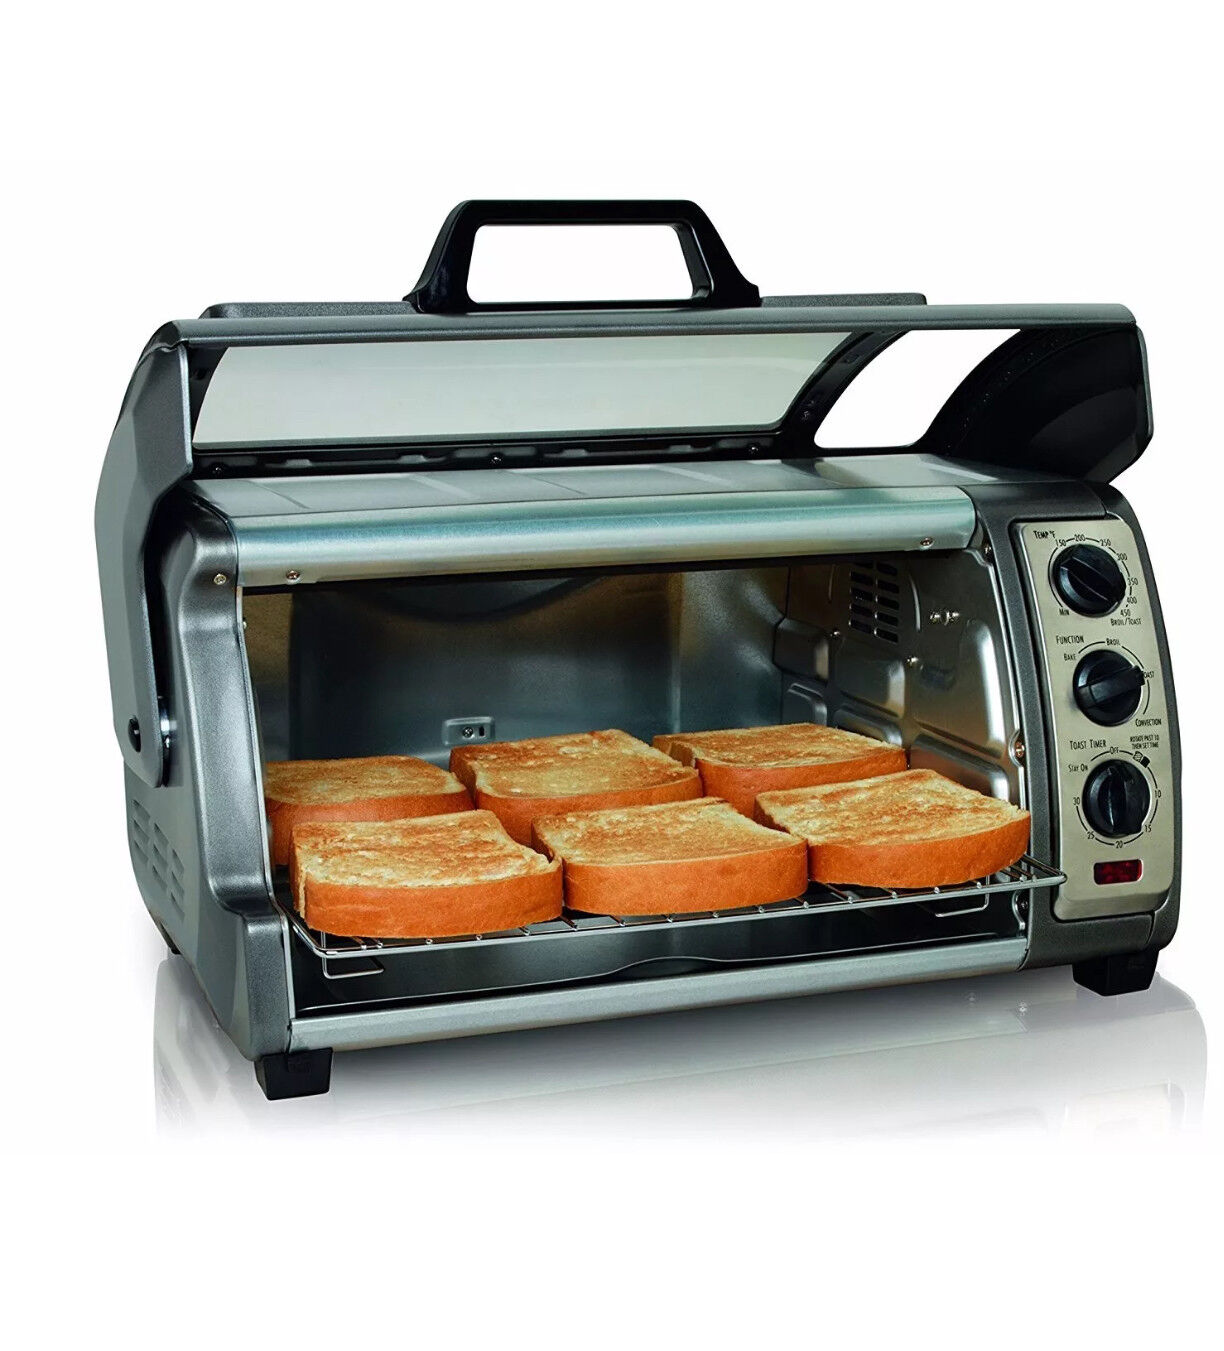 Hamilton Beach Countertop Toaster Oven Easy Reach with Roll-